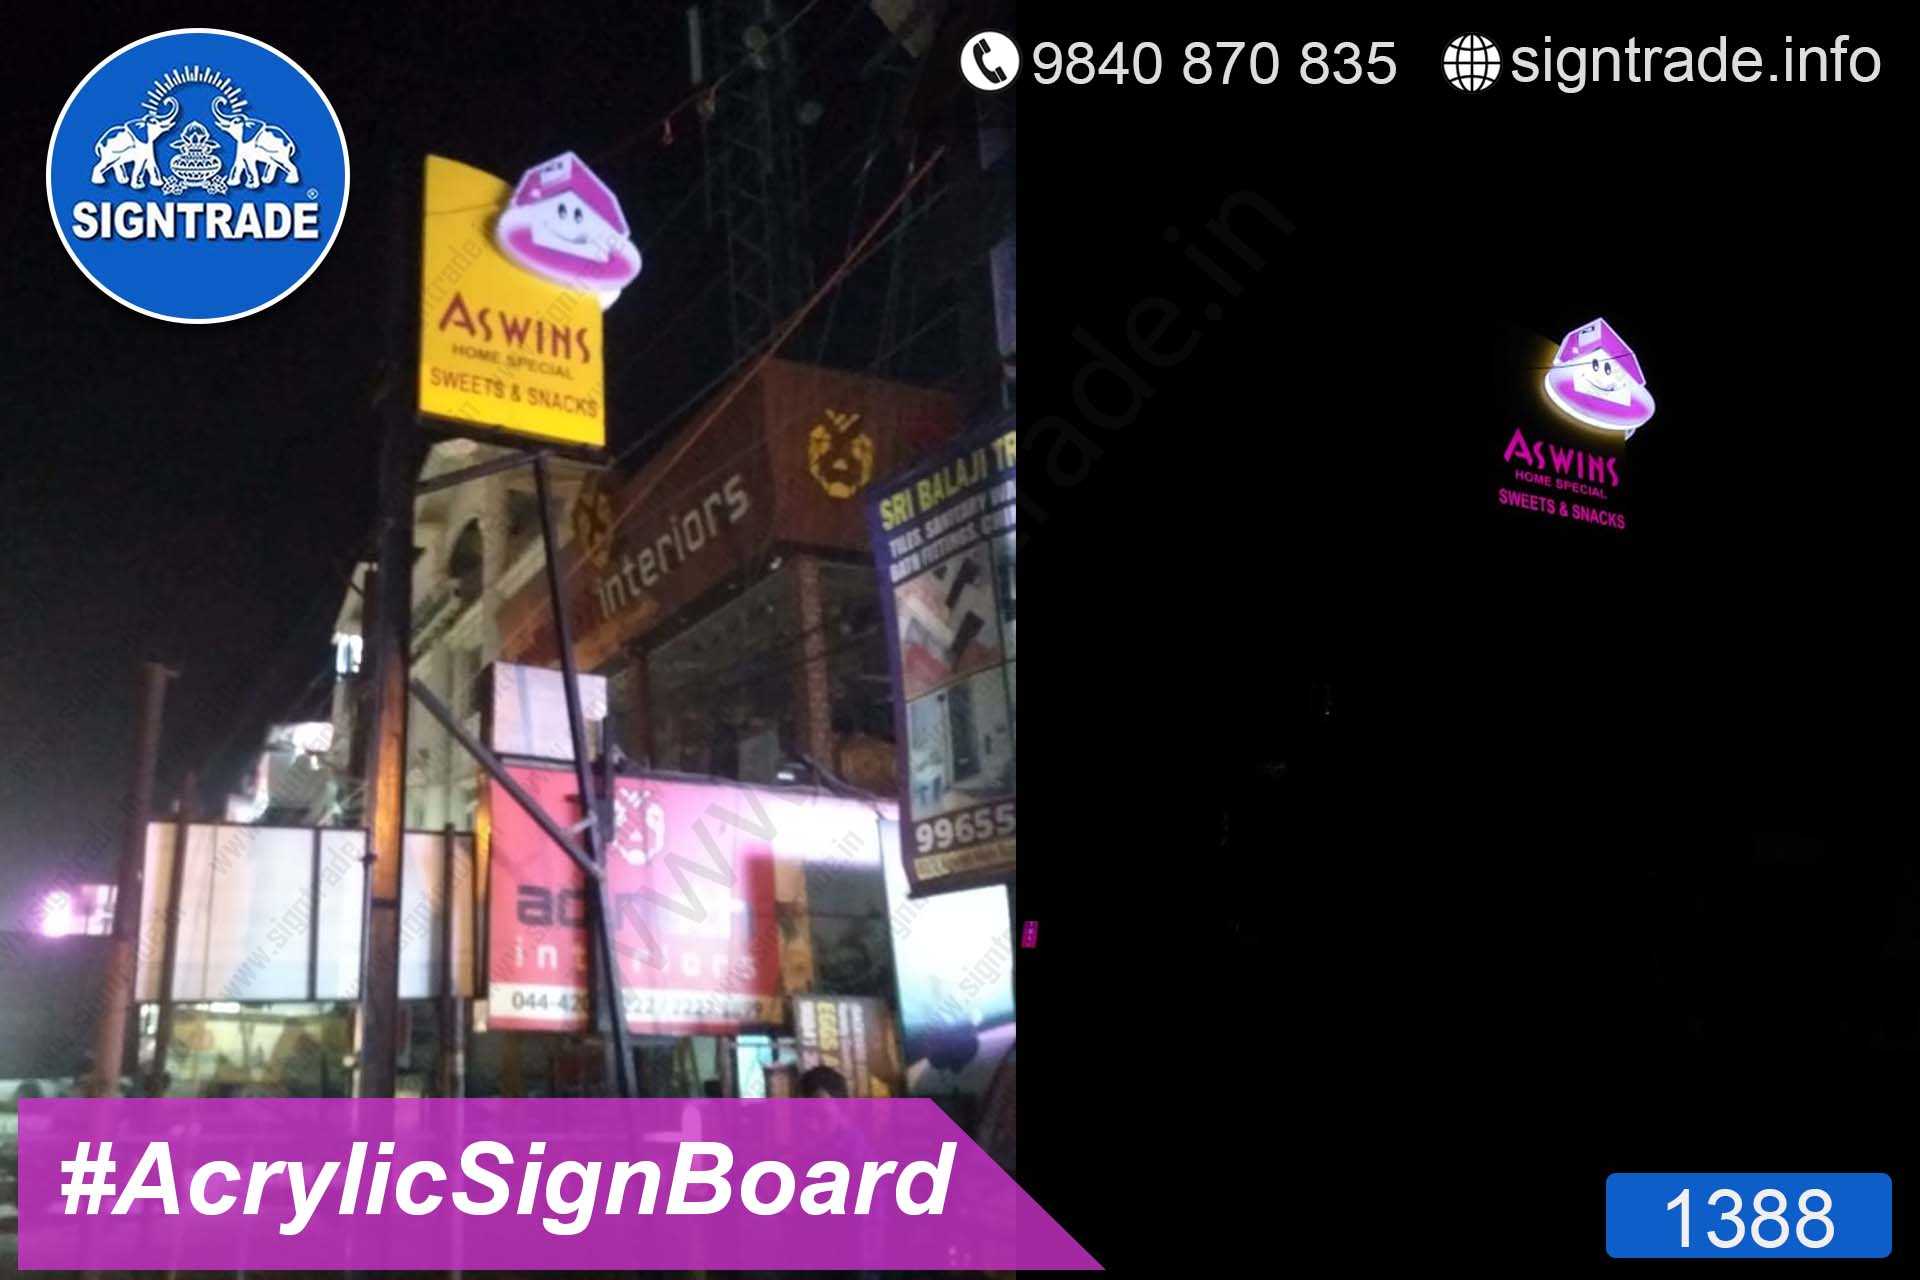 Ashwin Sweets and Snacks - 1388, LED Sign Board, Sign Board, Acrylic Sign Board, Glow Sign Board, Custom Sign Board